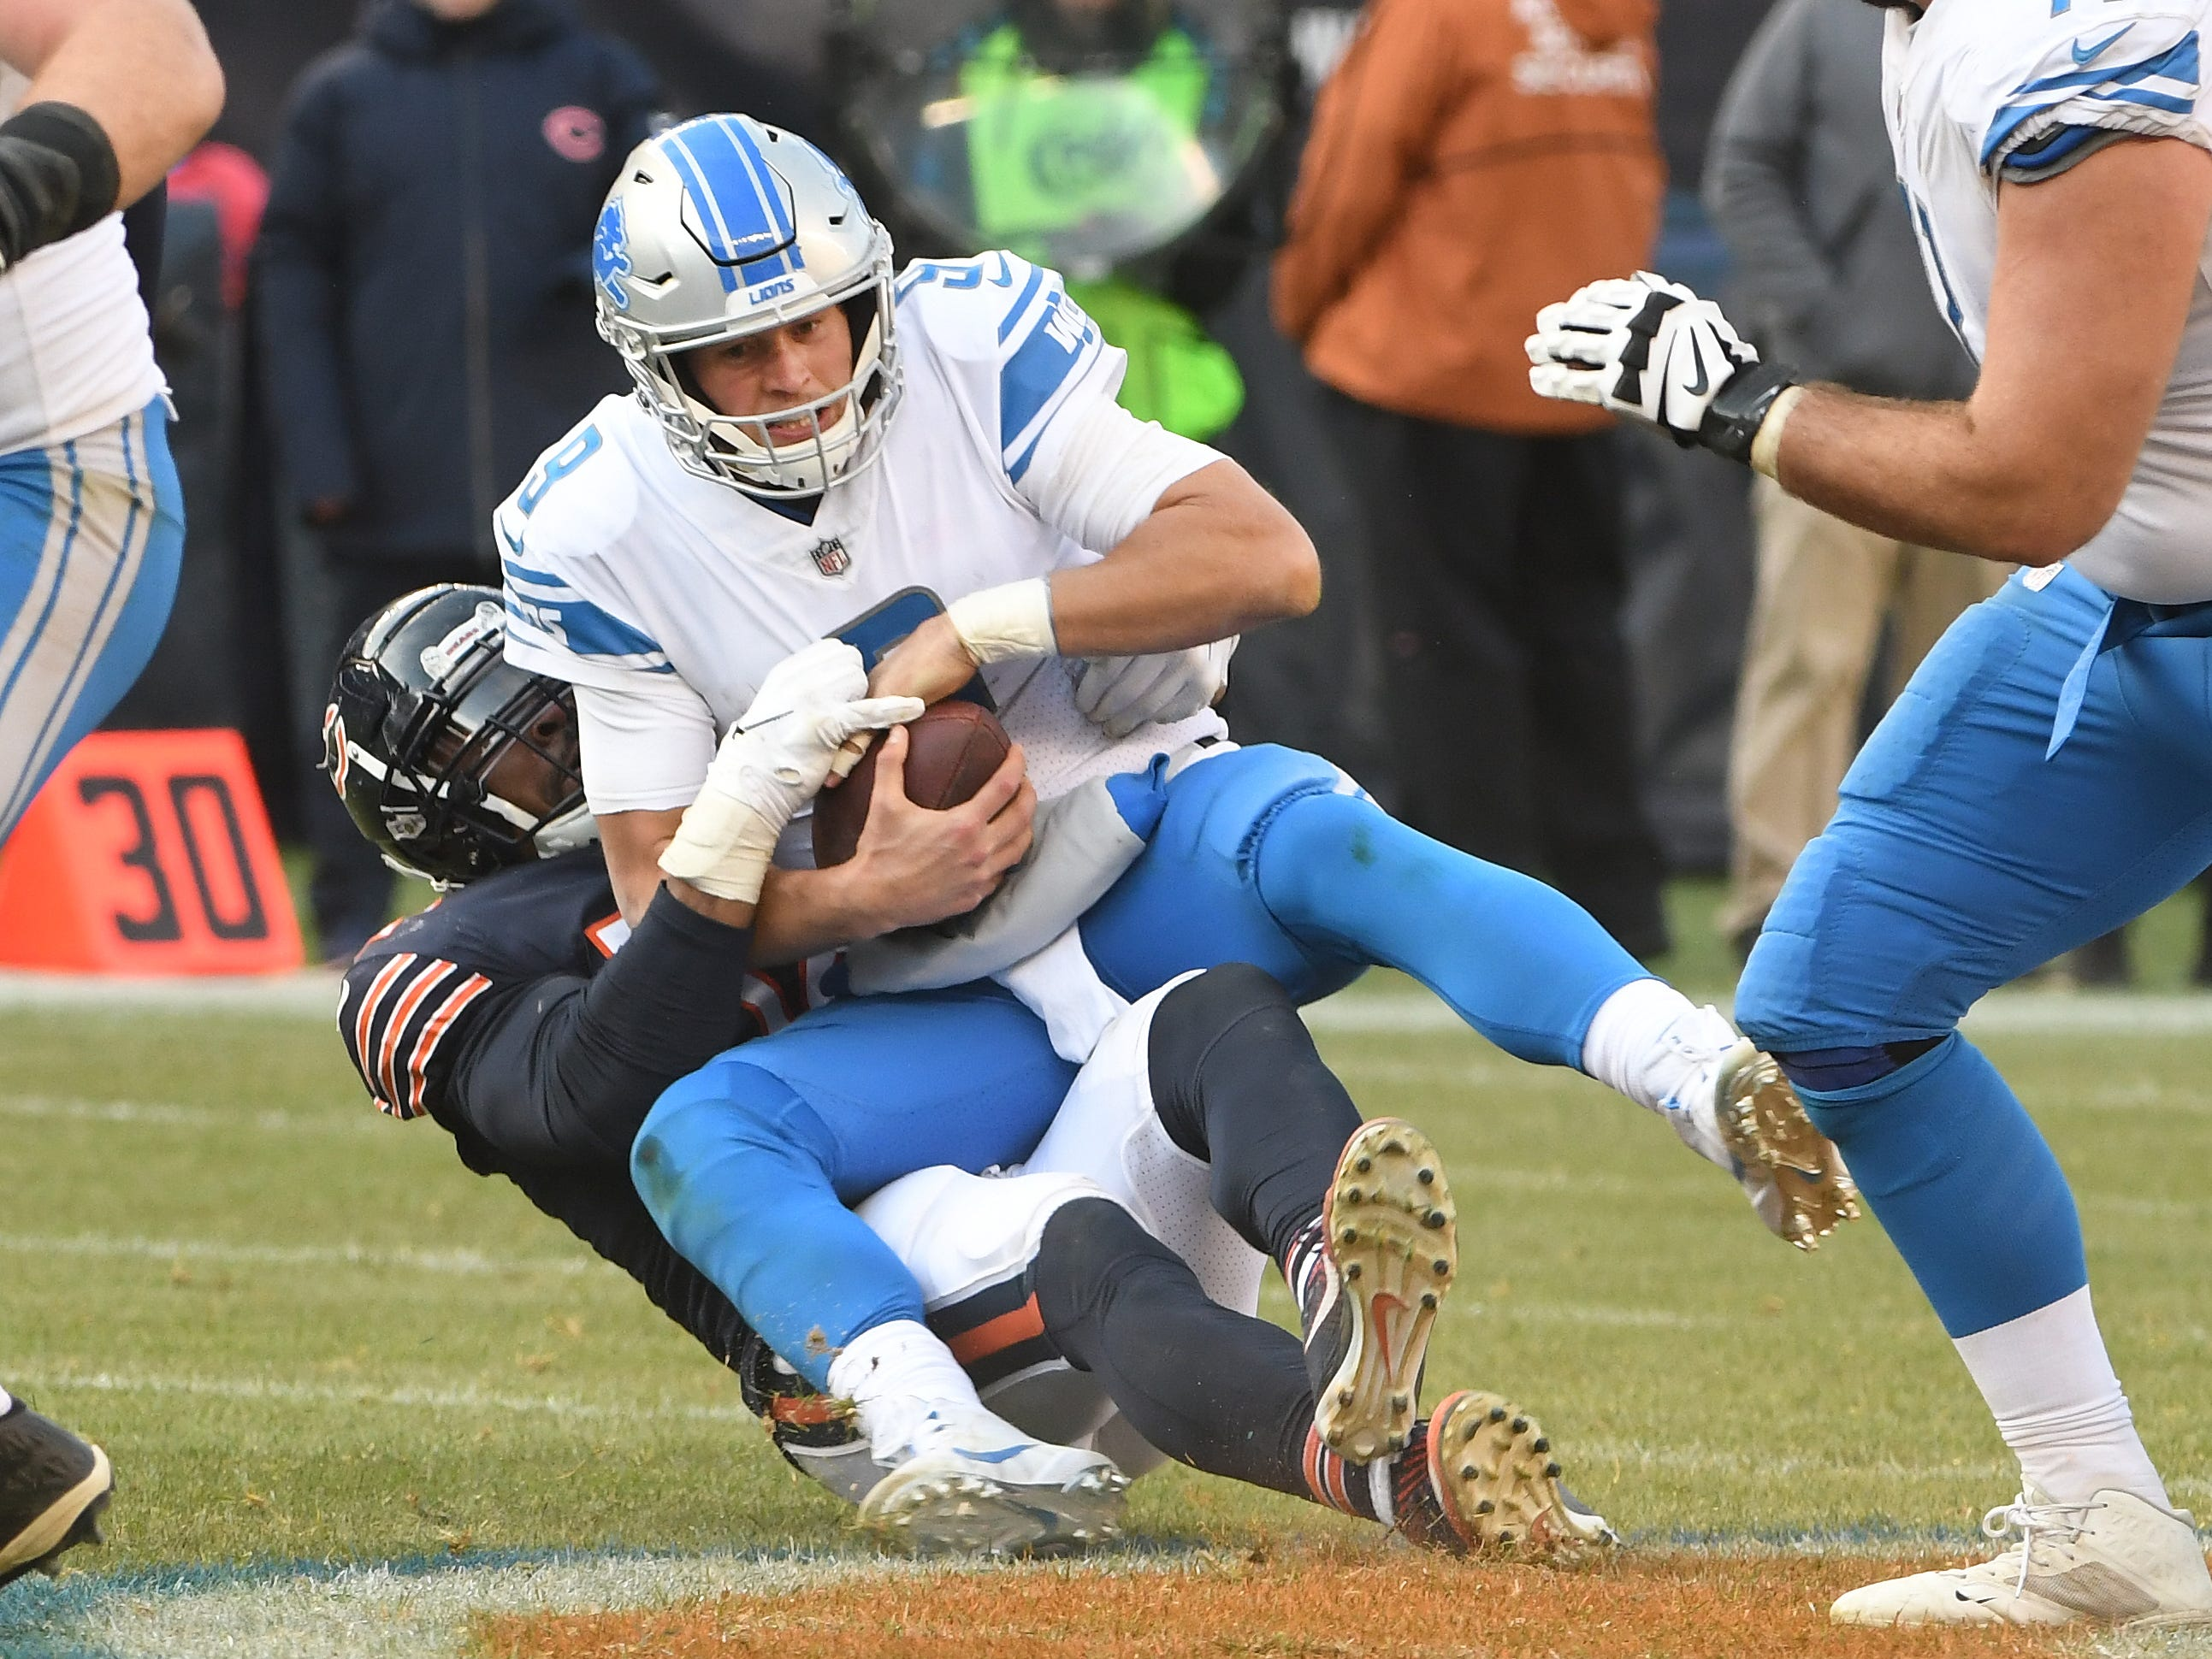 Lions quarterback Matthew Stafford is sacked by Bears' Khalil Mack in the fourth quarter.